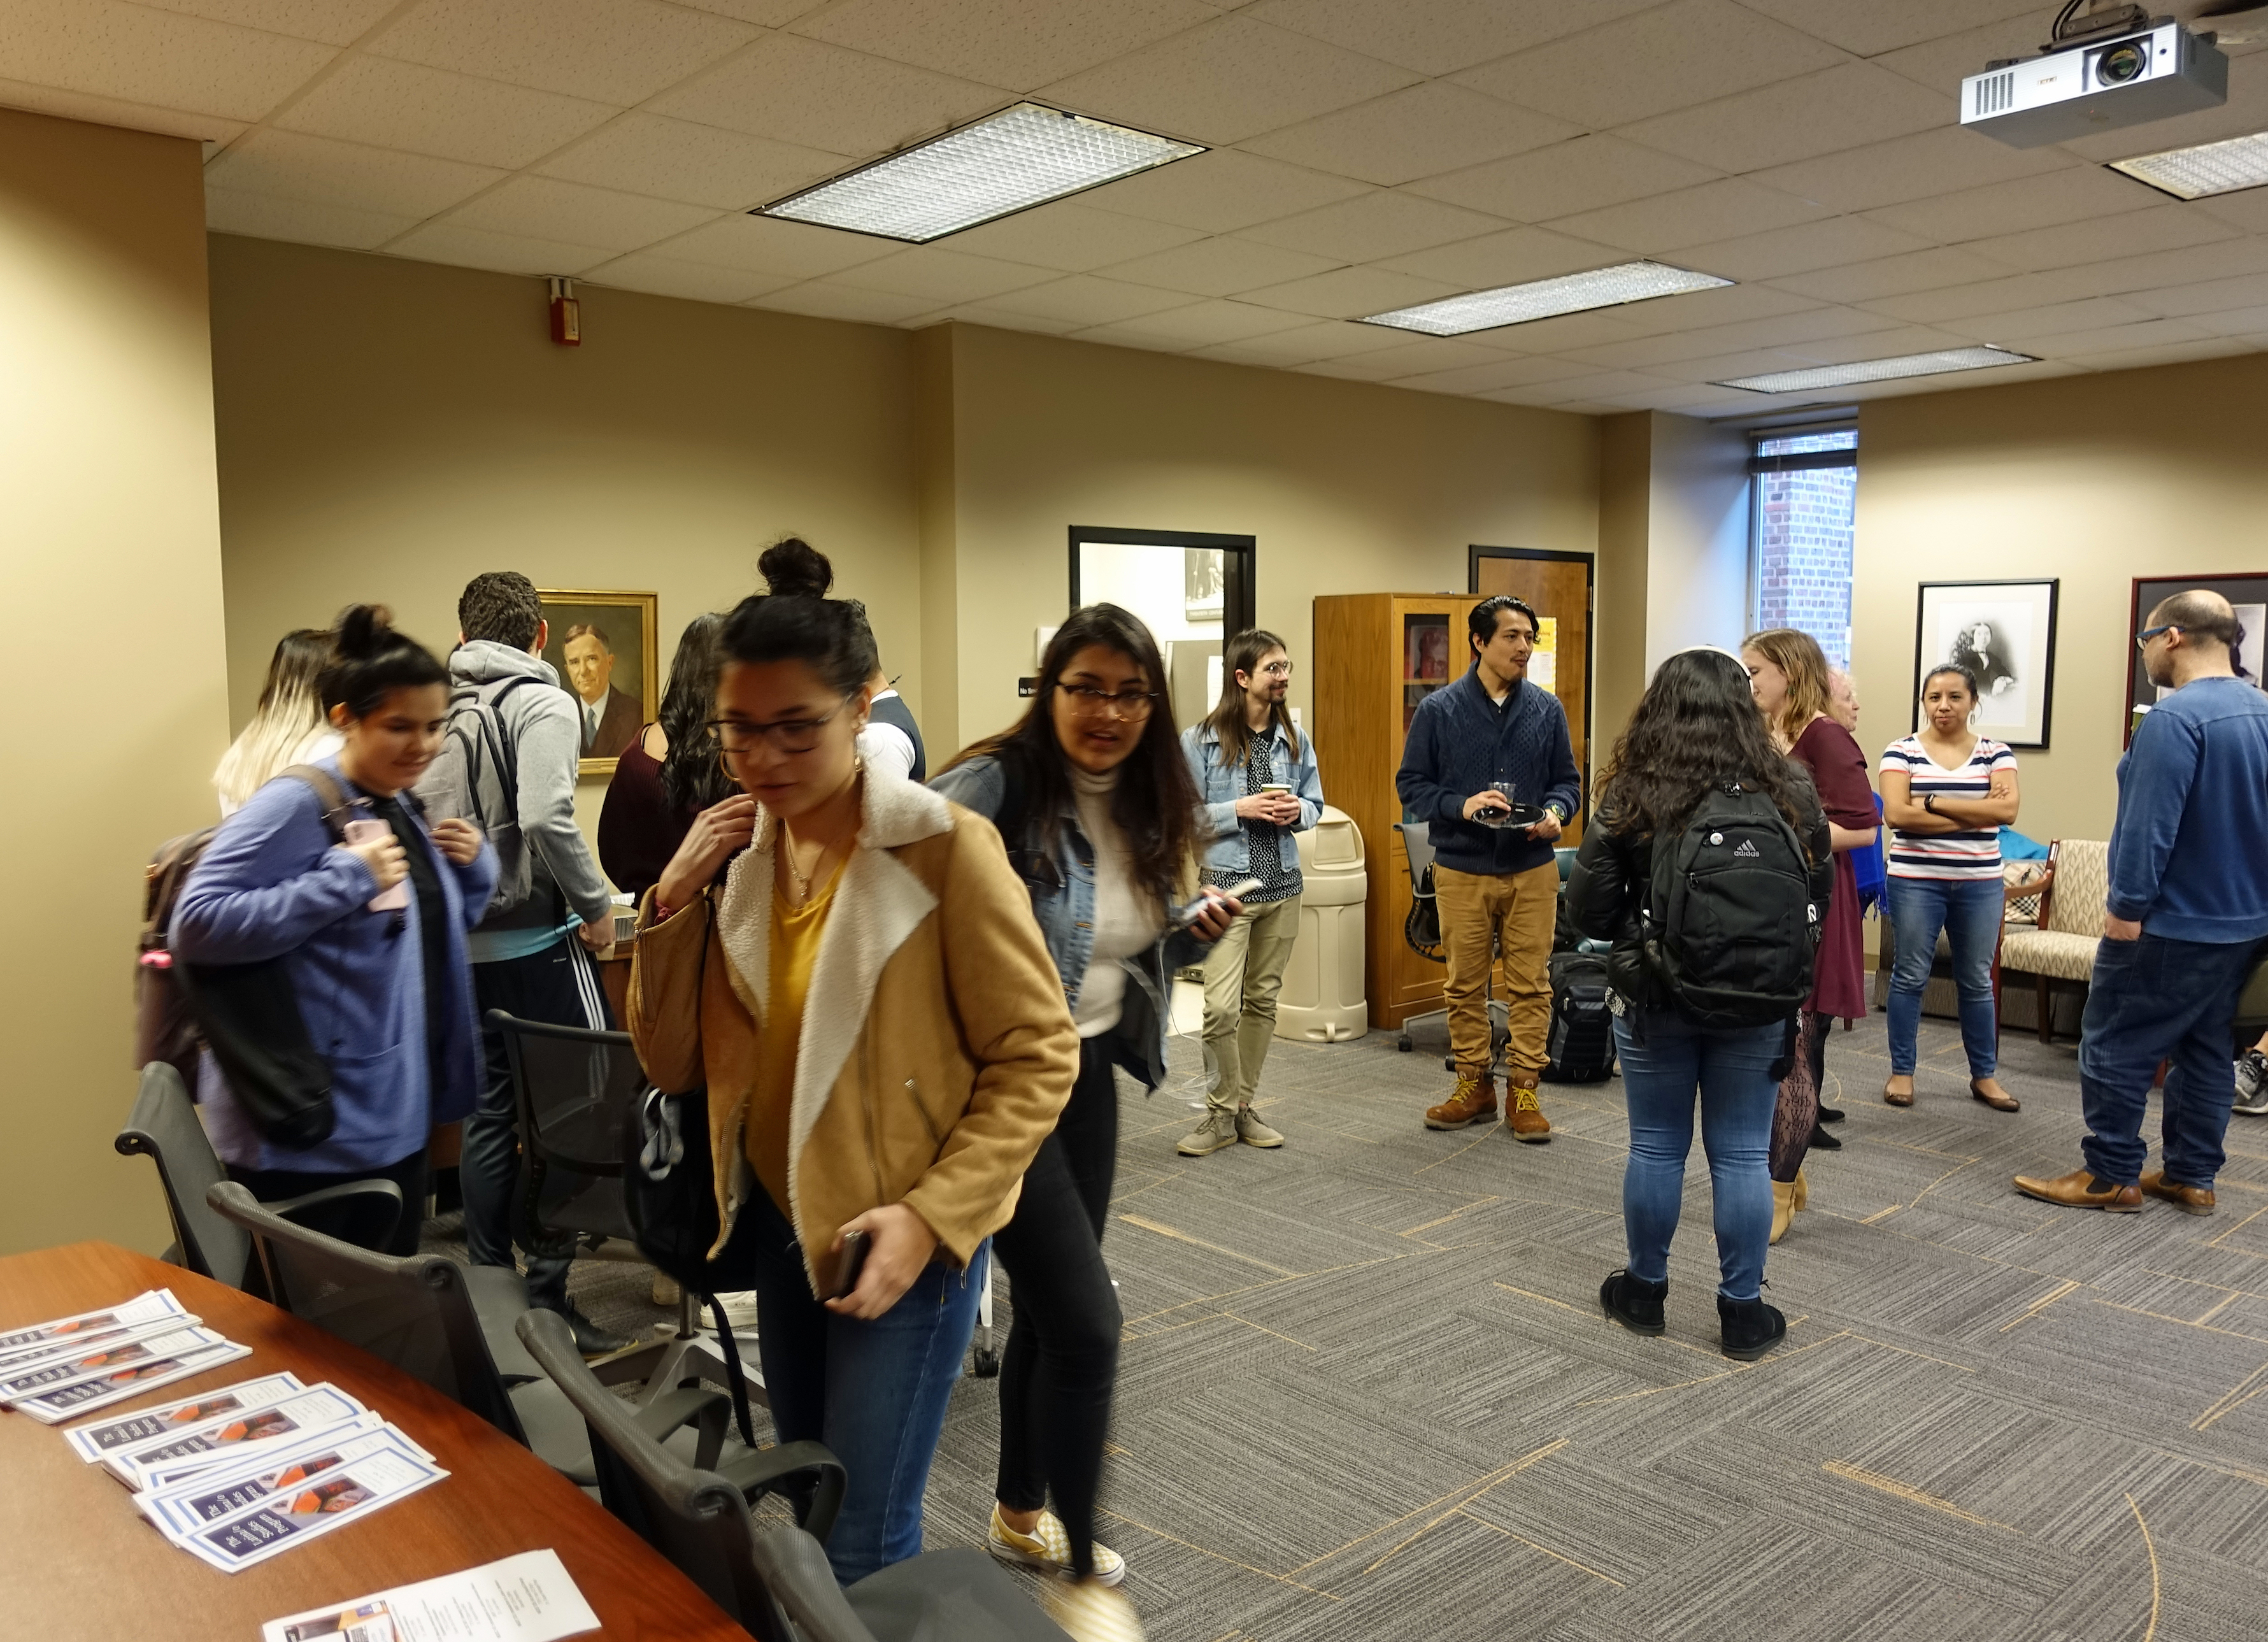 Students gathered in a large conference room and chatting in small groups as one student approaches a table with Latina/o Studies Program pamphlets.